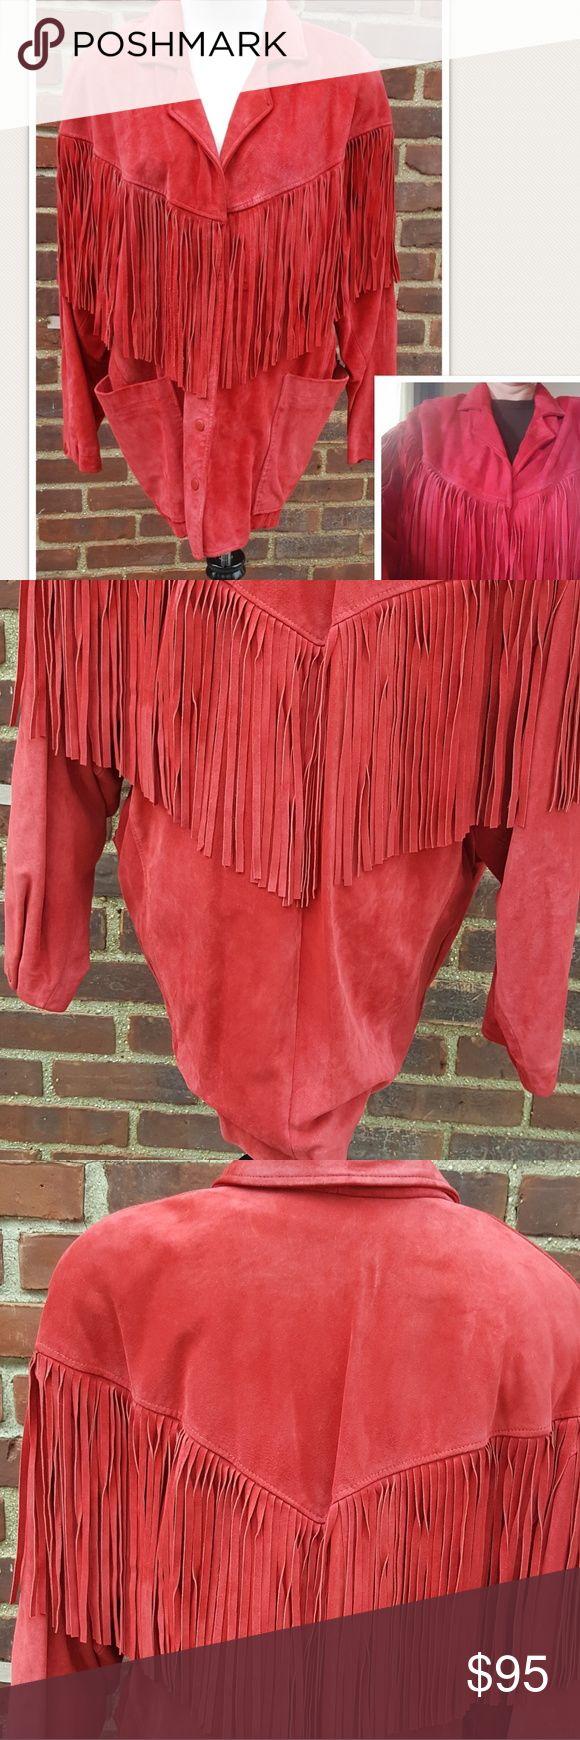 Fab vintage Fringe jacket M thru 1X Fabulous suede vintage jacket that is in wonderful condition. Although it is labeled a medium it is cut extremely big and it's me and I'm a 38DD., it measures 25 in under the arms and is 29 inches long. This is a heavy package by Poshmark standard so I can't do a super lowball offer as sellers undertake the extra postage Vintage Jackets & Coats